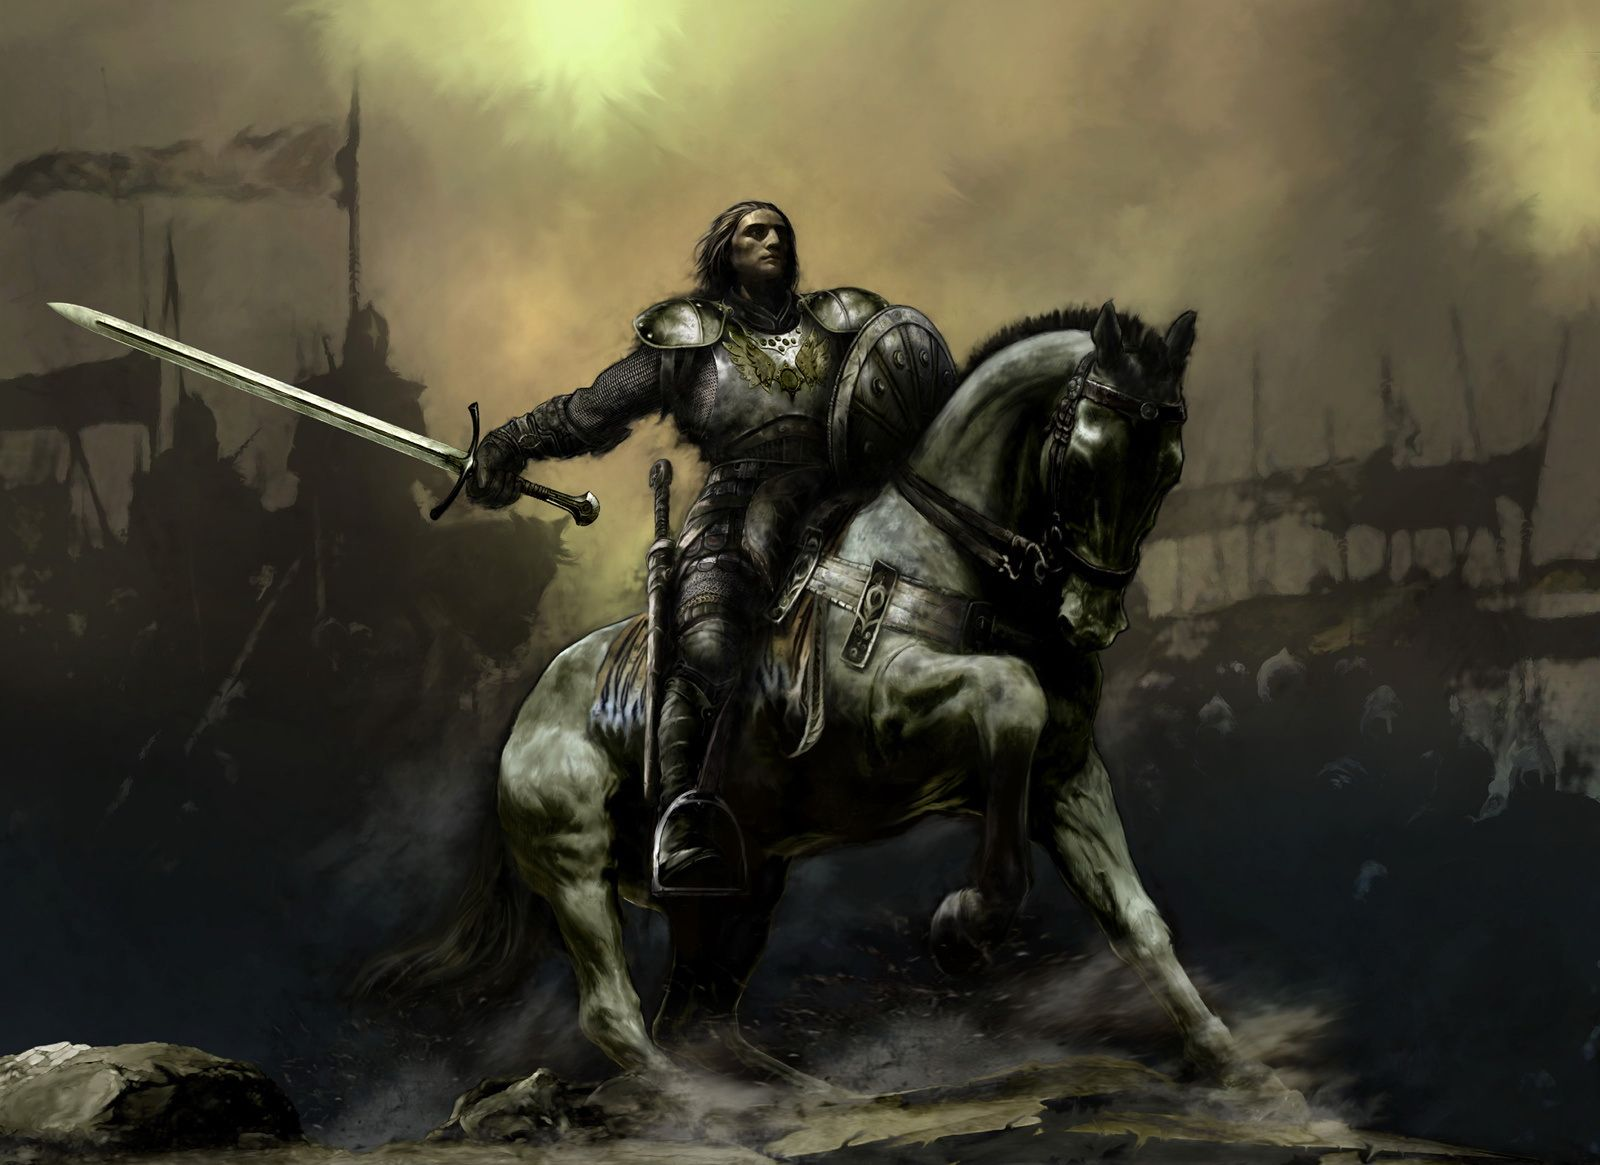 Battle warrior Warriors wallpaper, Fantasy, Fantasy art